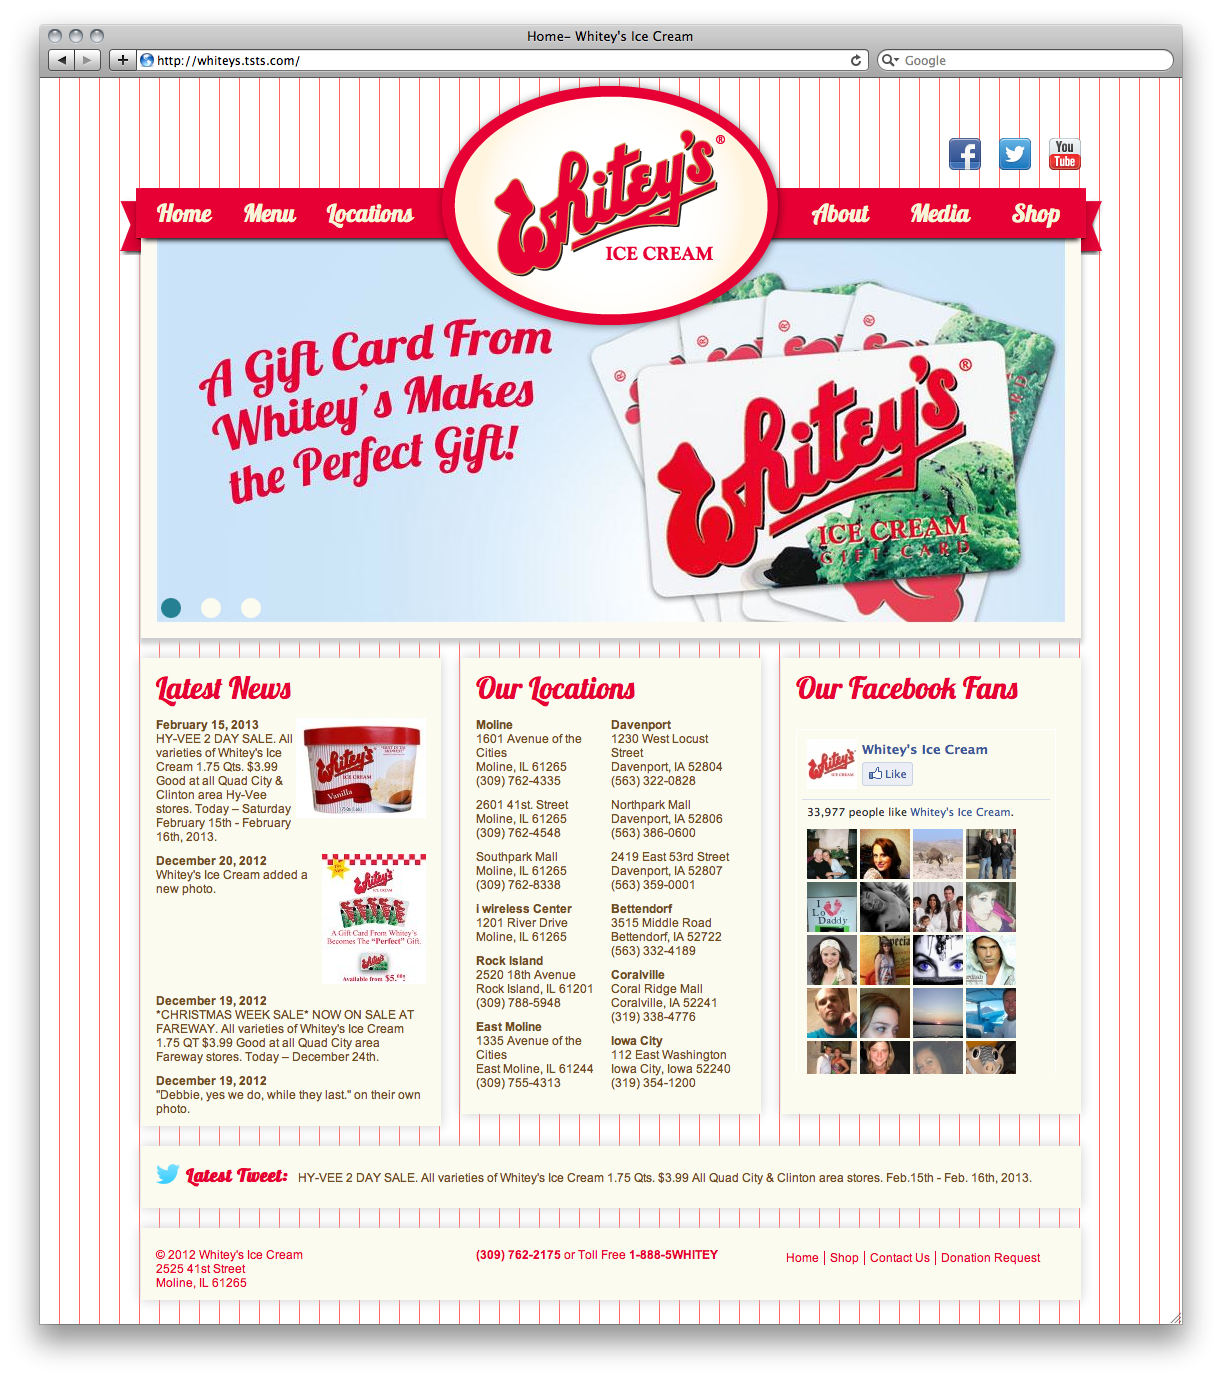 Whitey's Ice Cream Home Page